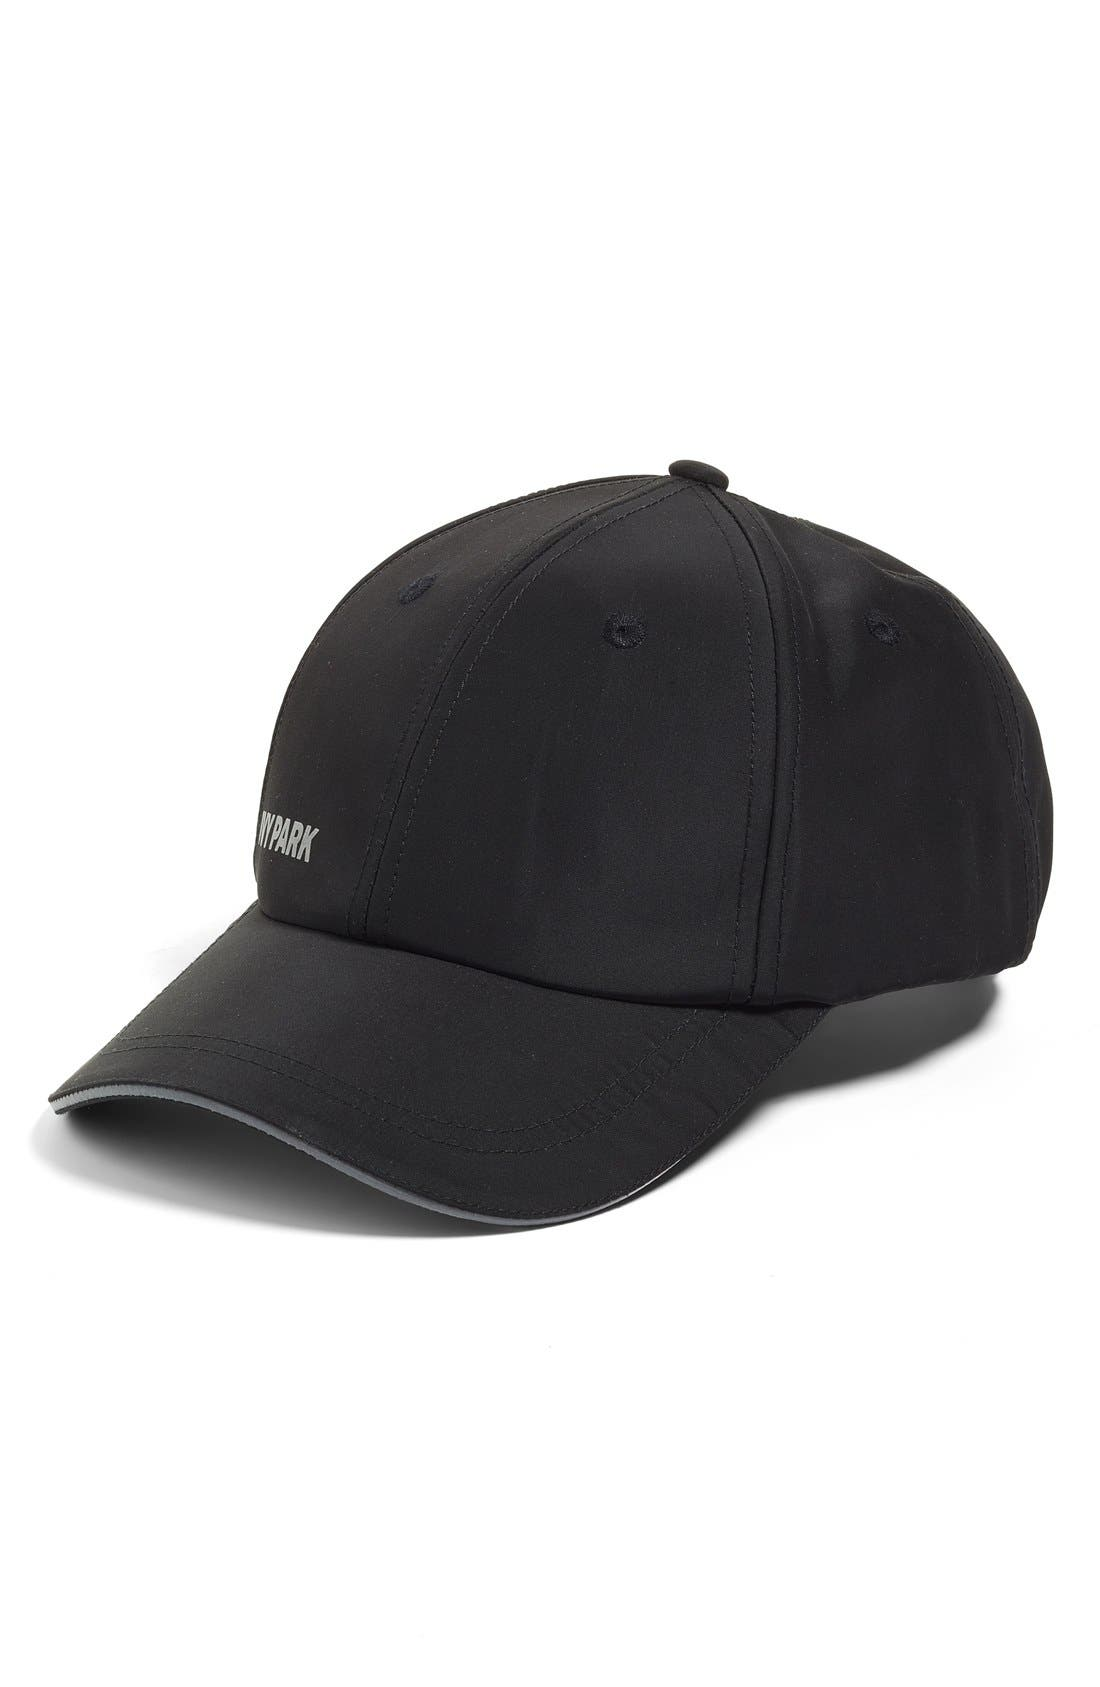 Alternate Image 1 Selected - IVY PARK® Reflective Logo Baseball Cap